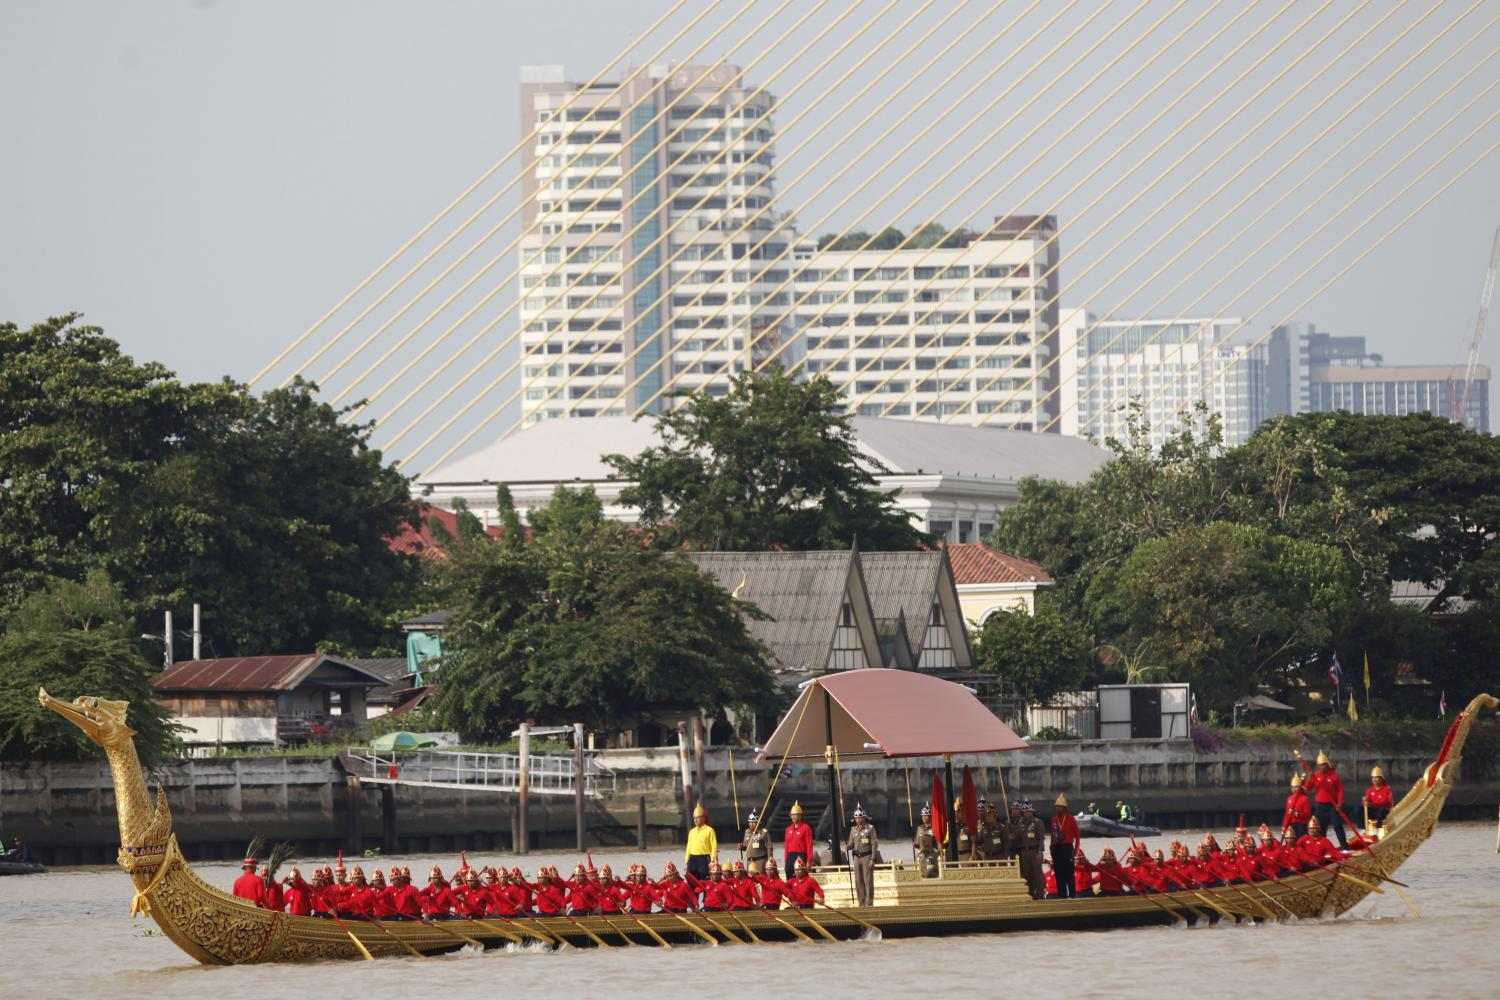 prepping for the big day: The royal navy puts on a rehearsal of the royal barge procession for His Majesty the King comprising 52 barges and boats in preparation for the royal 'kathin' (monk's robe-giving) ceremony next month, including the principal Suphannahong Royal Barge (pictured).